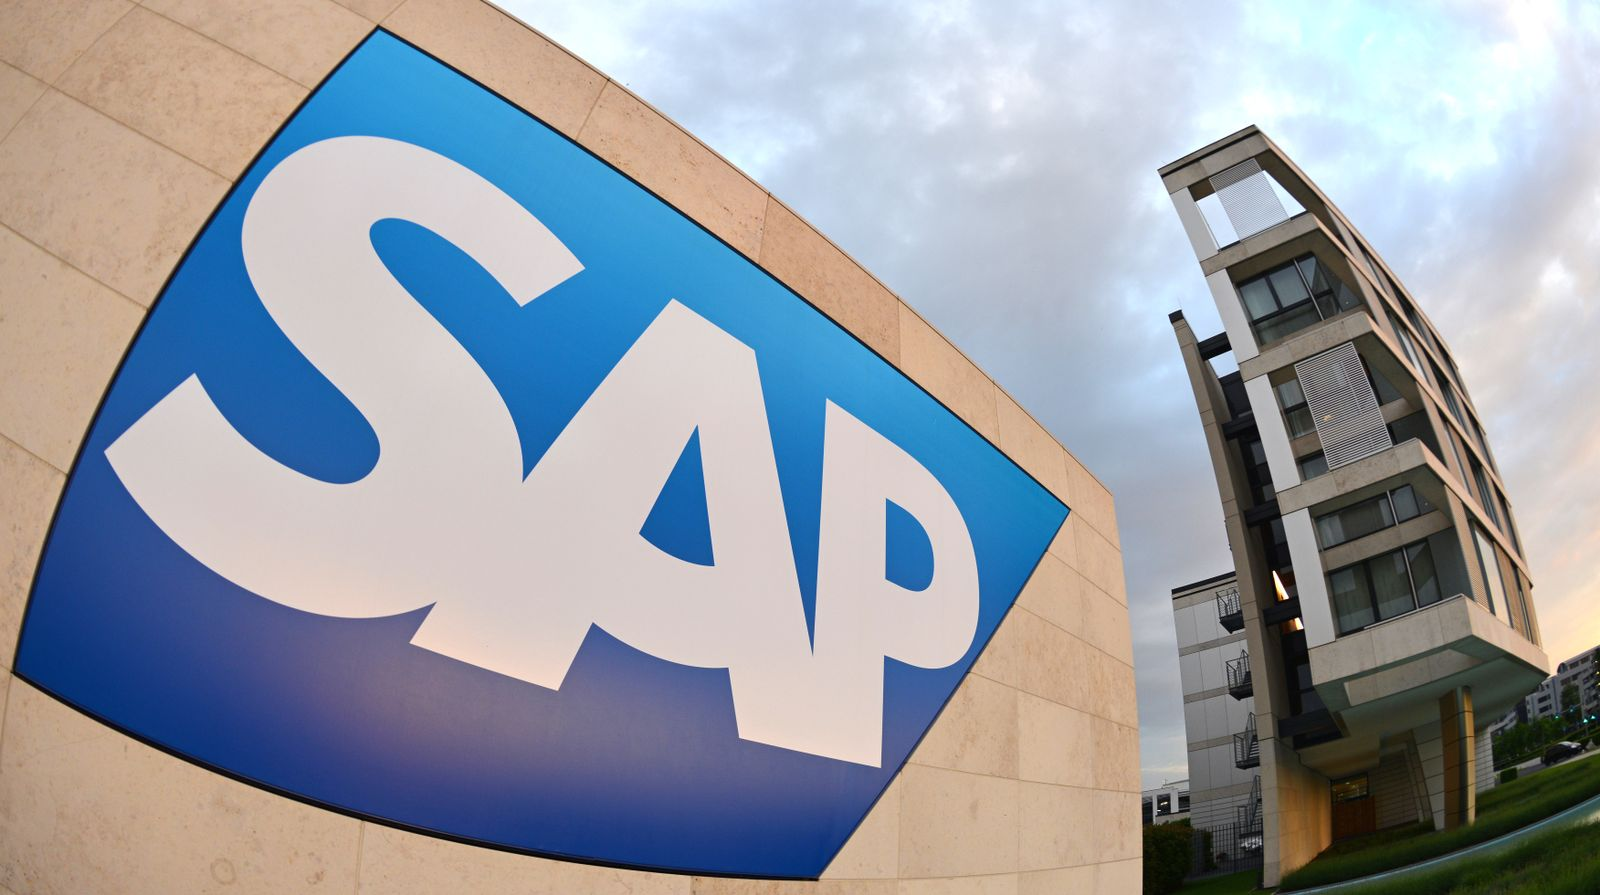 SAP / Walldorf